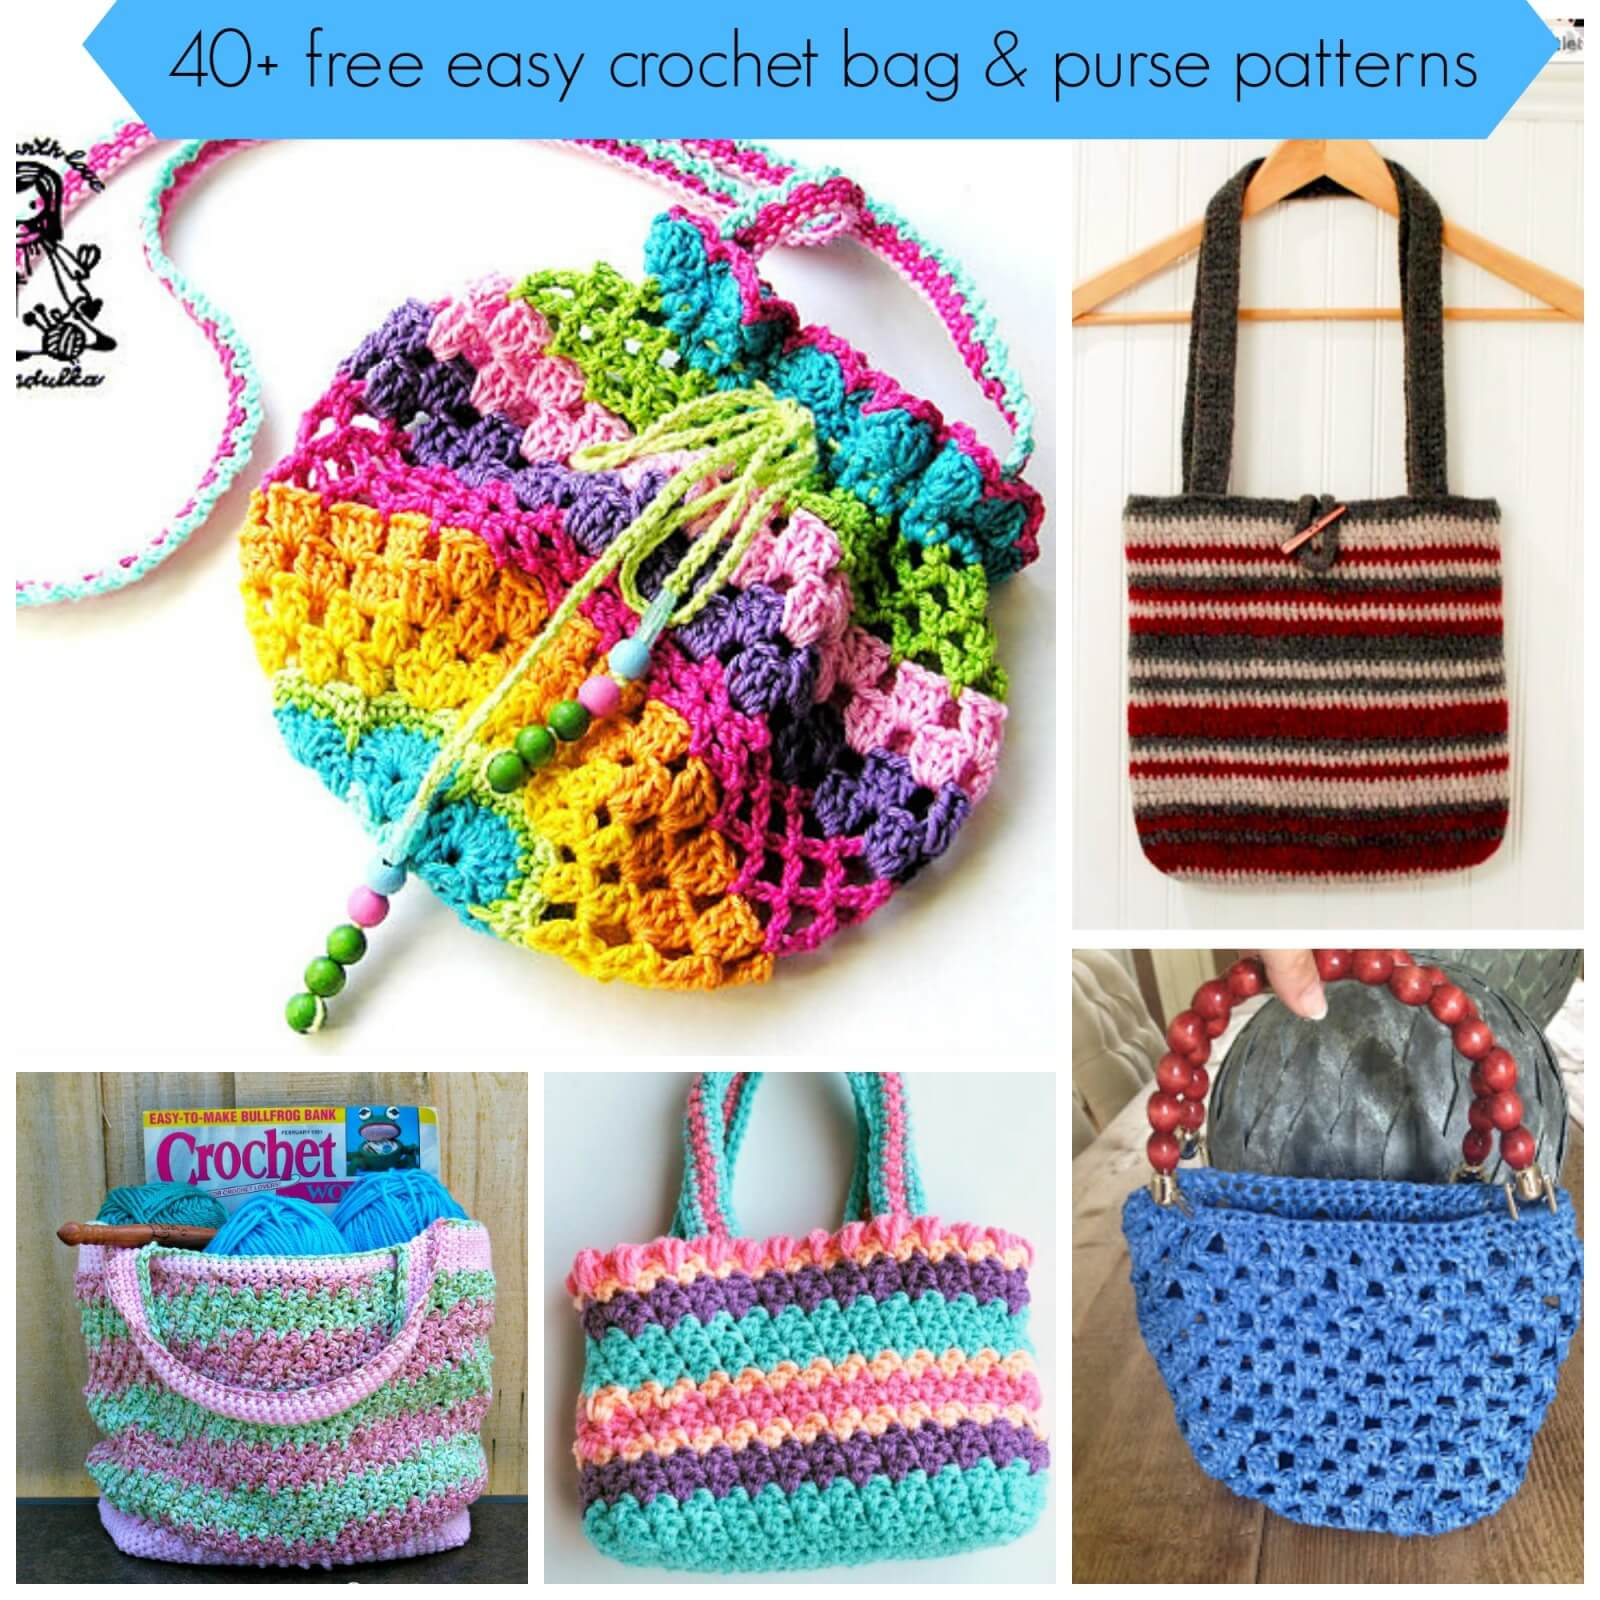 Bags And Purses Patterns : 40+free-easy-crochet-bag-and-purse-pattern-tutorial.jpg